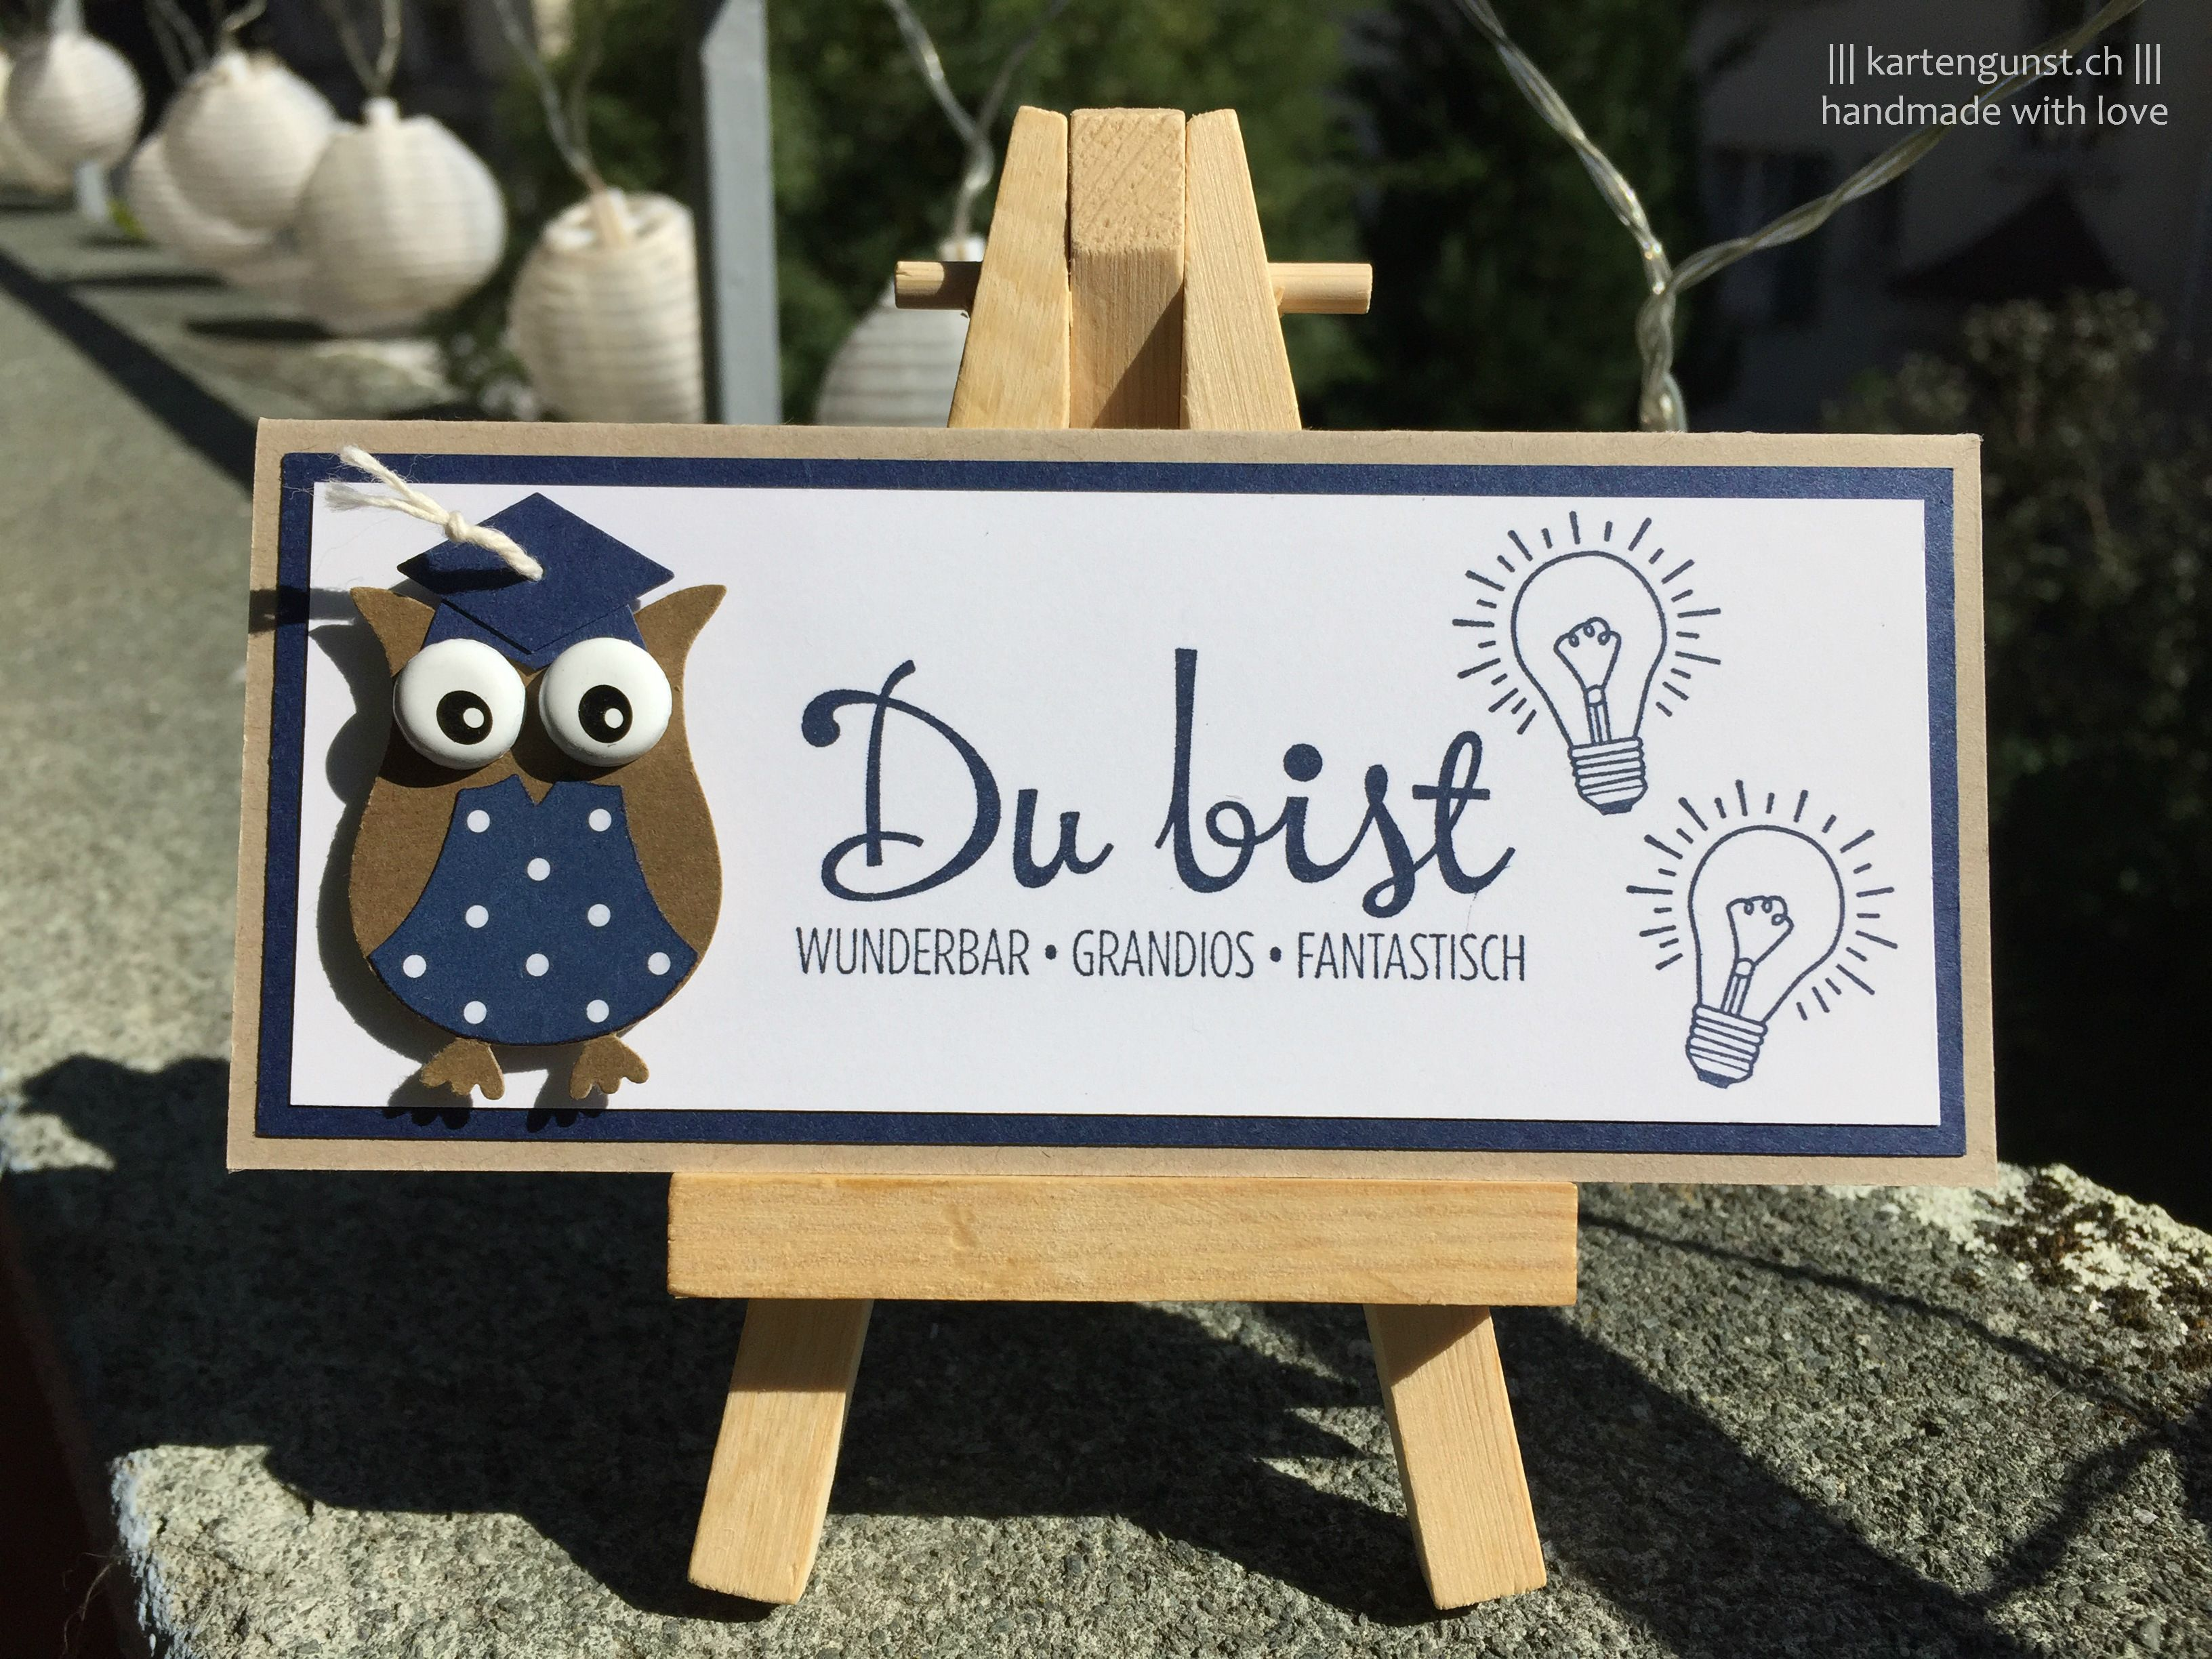 Karte zum Studienabschluss/ Graduation card ||| Stampin' Up! ||| Eule/Owl, Fantastische Vier/ Fantastische Vier/Fabulous, Flüsterweiss/Whisper White, Gemustertes Designerpapier/, Marineblau/Night of Navy, Mein Lichtblick/ You Brighten My Day, Savanne/Crumb Cake